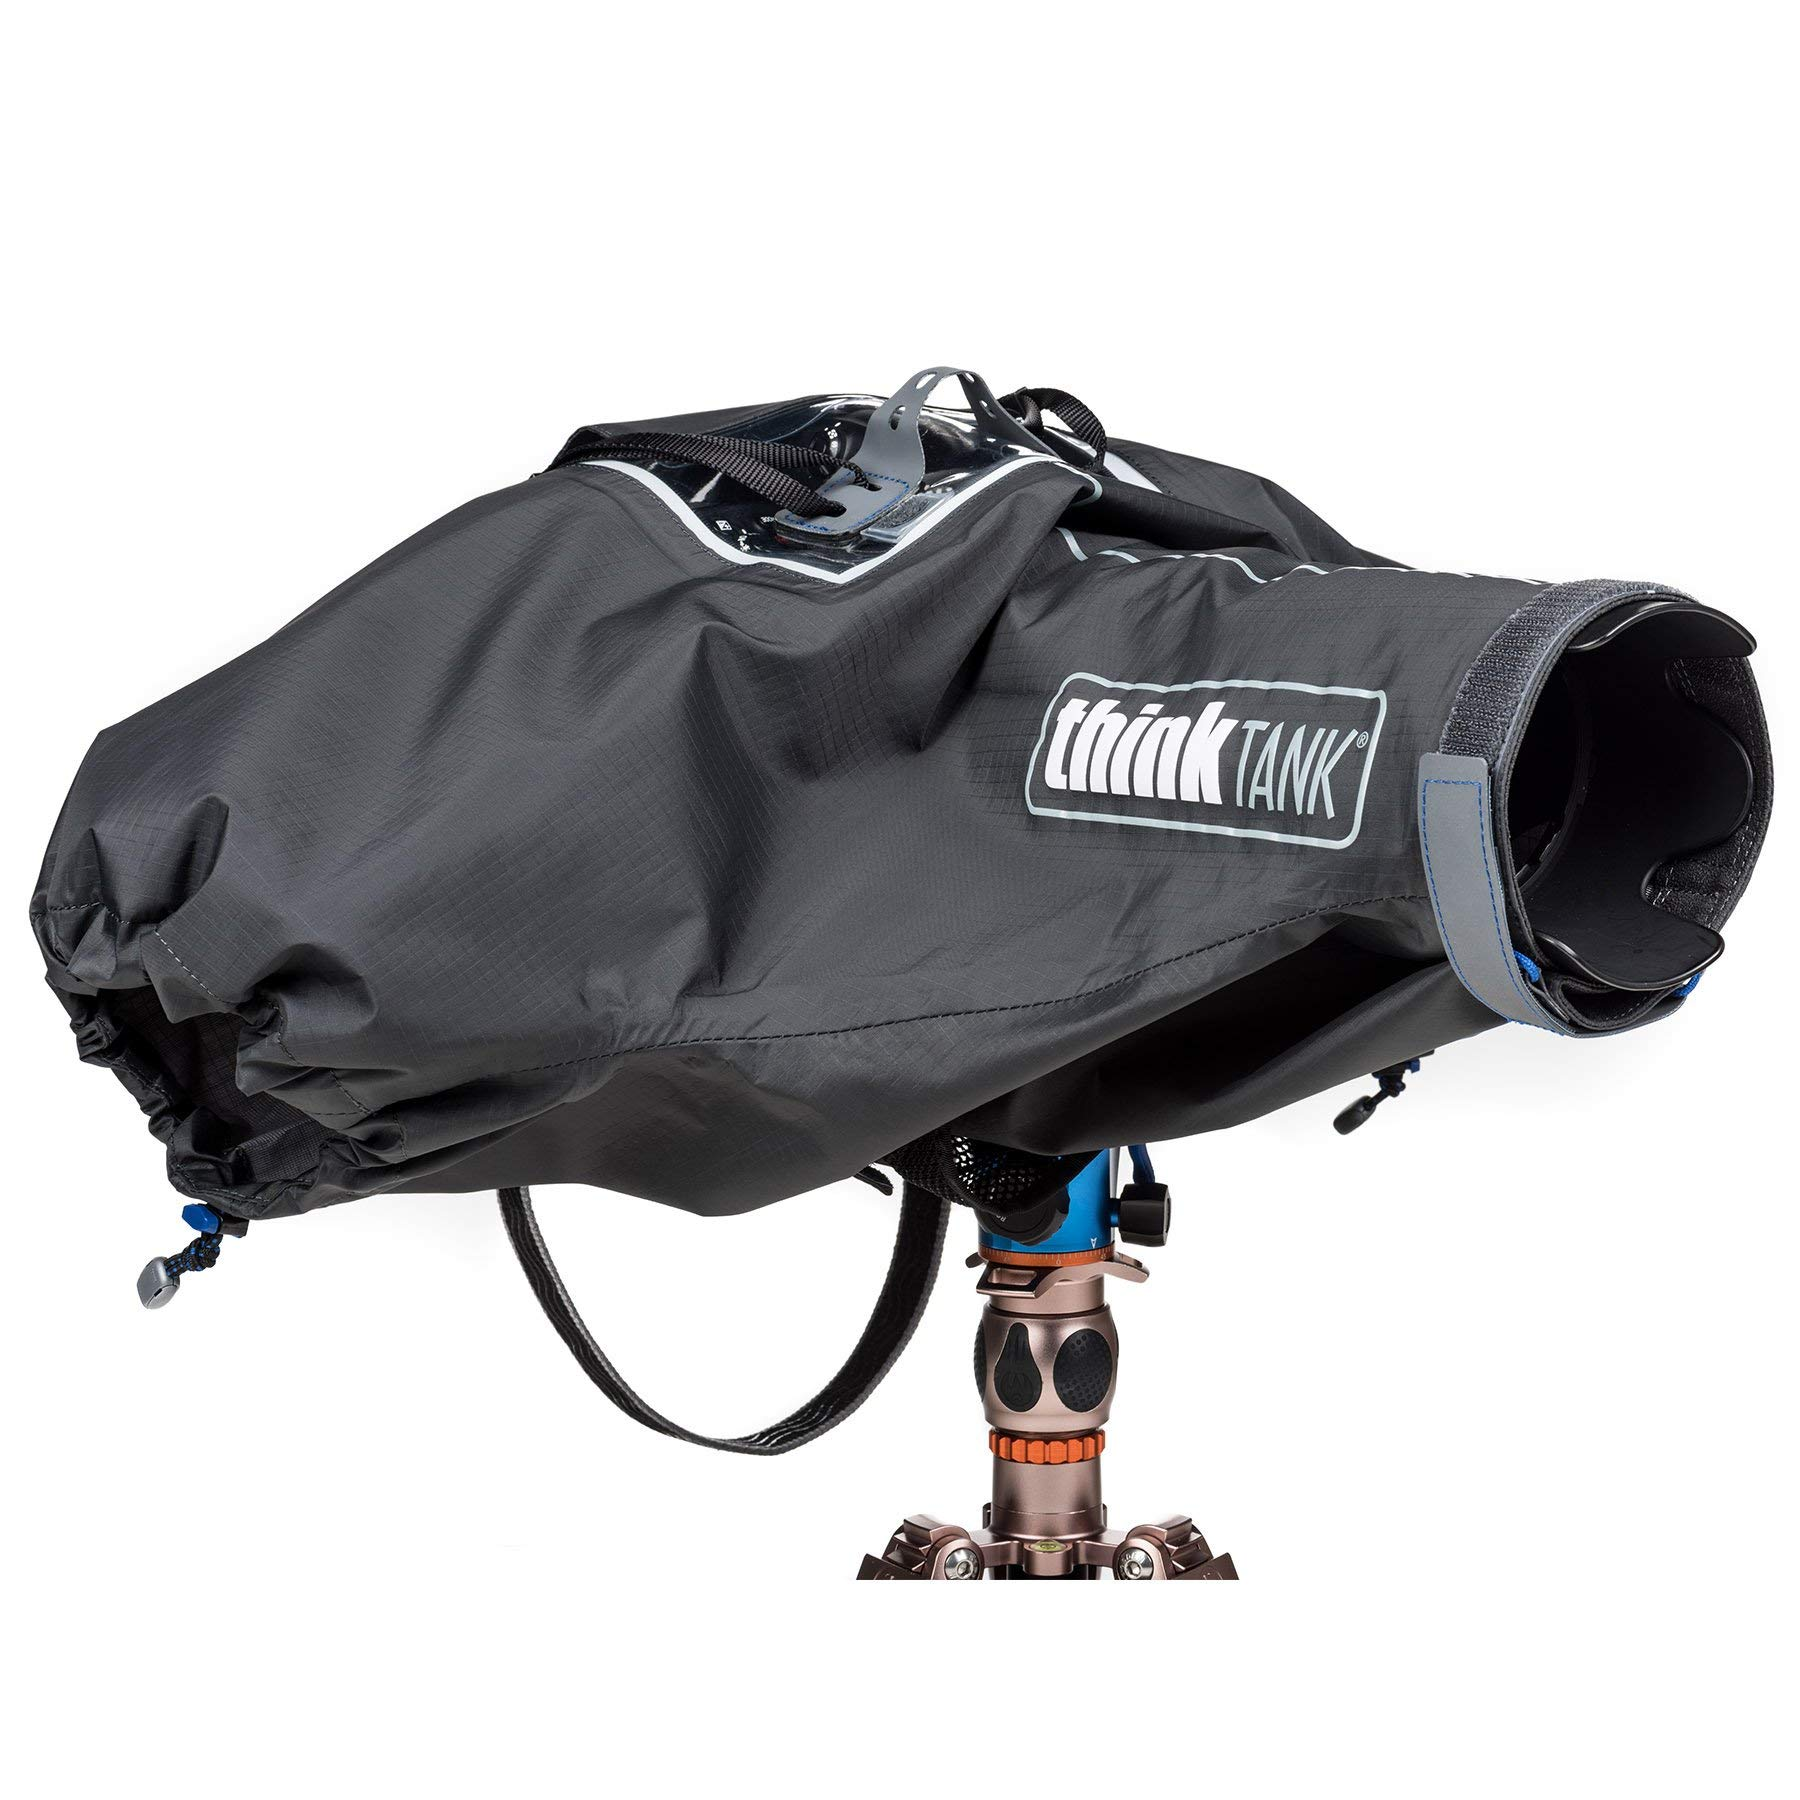 Think Tank Photo Hydrophobia D 70-200 V3 Camera Rain Cover for DSLR Camera with 70-200mm f/2.8 Lens by Think Tank